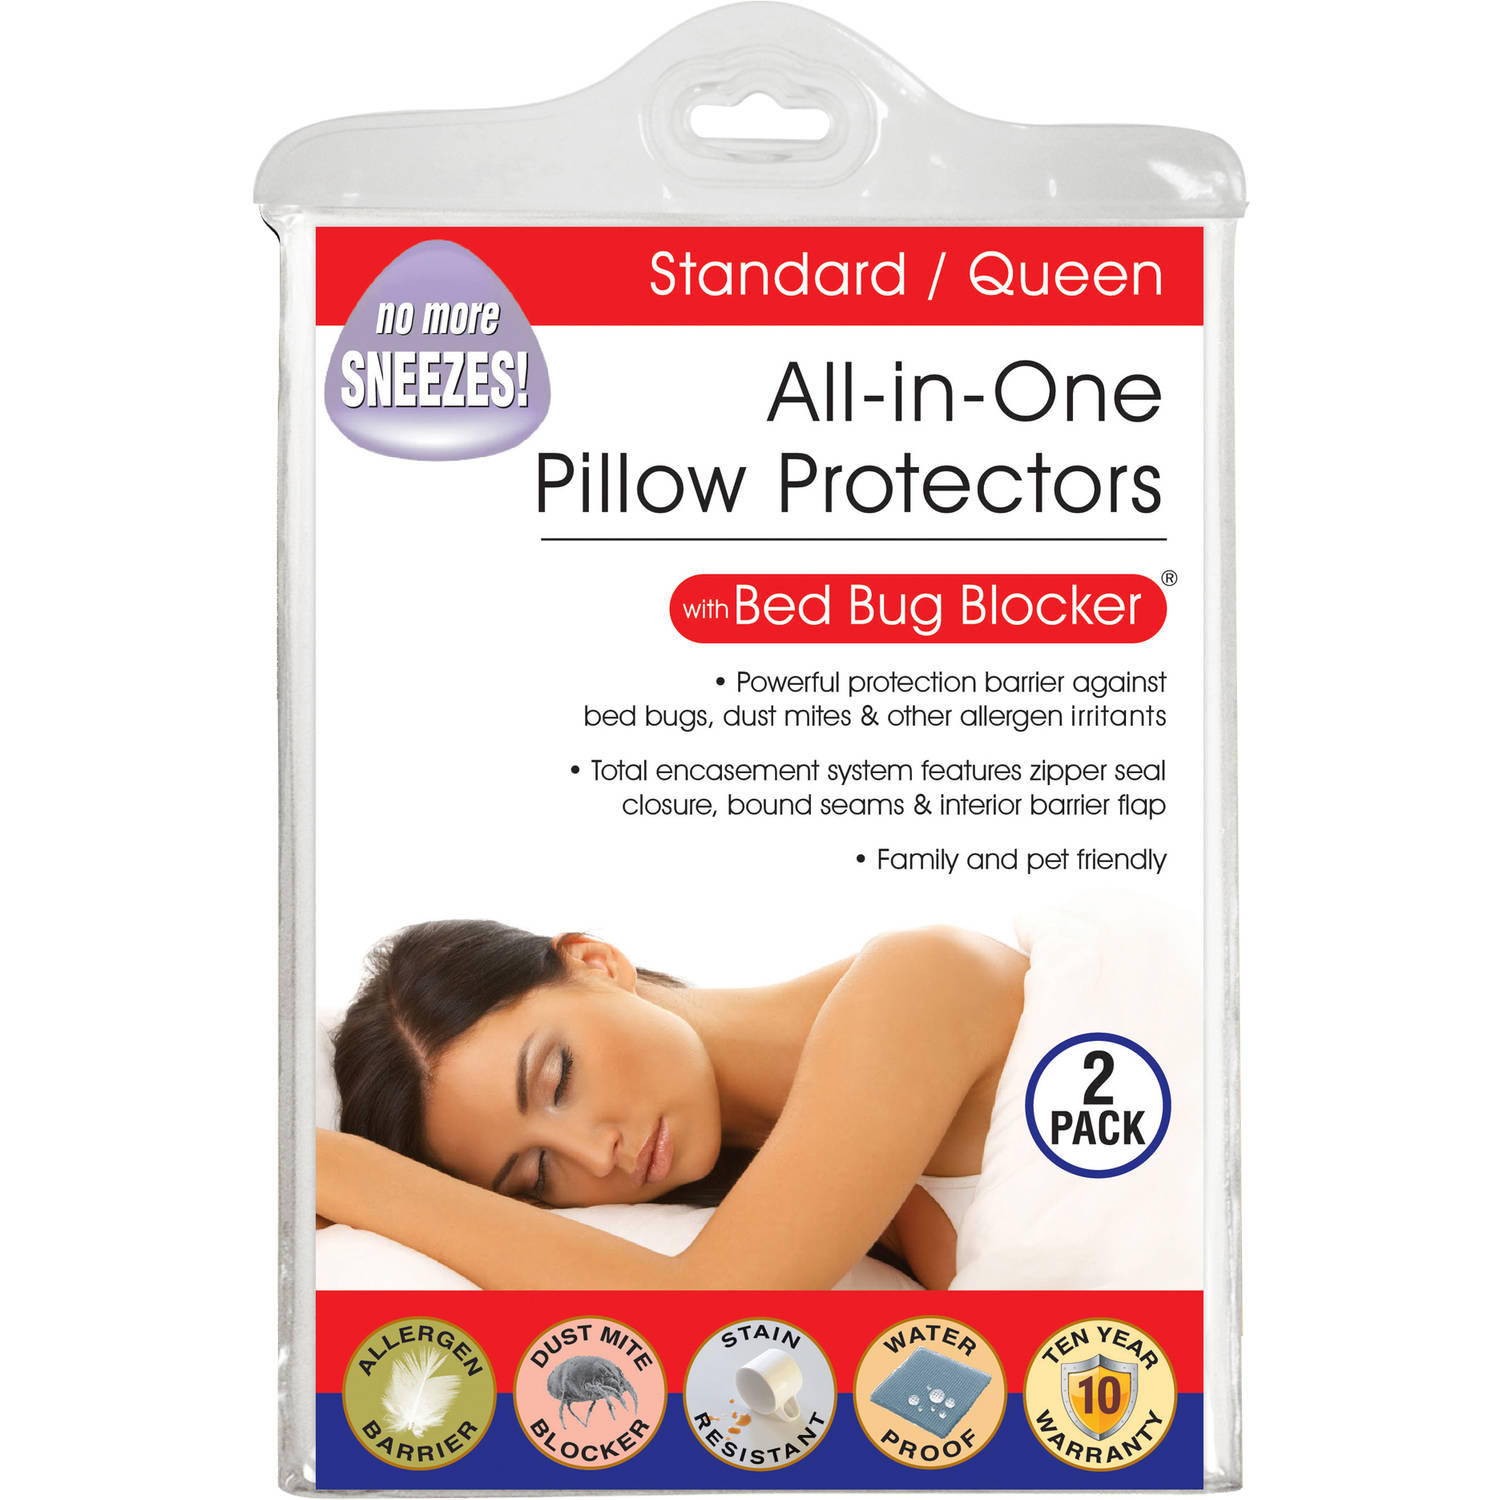 Luxury Cotton Rich Bed Bug Blocker Pillow Protector, Standard/Queen